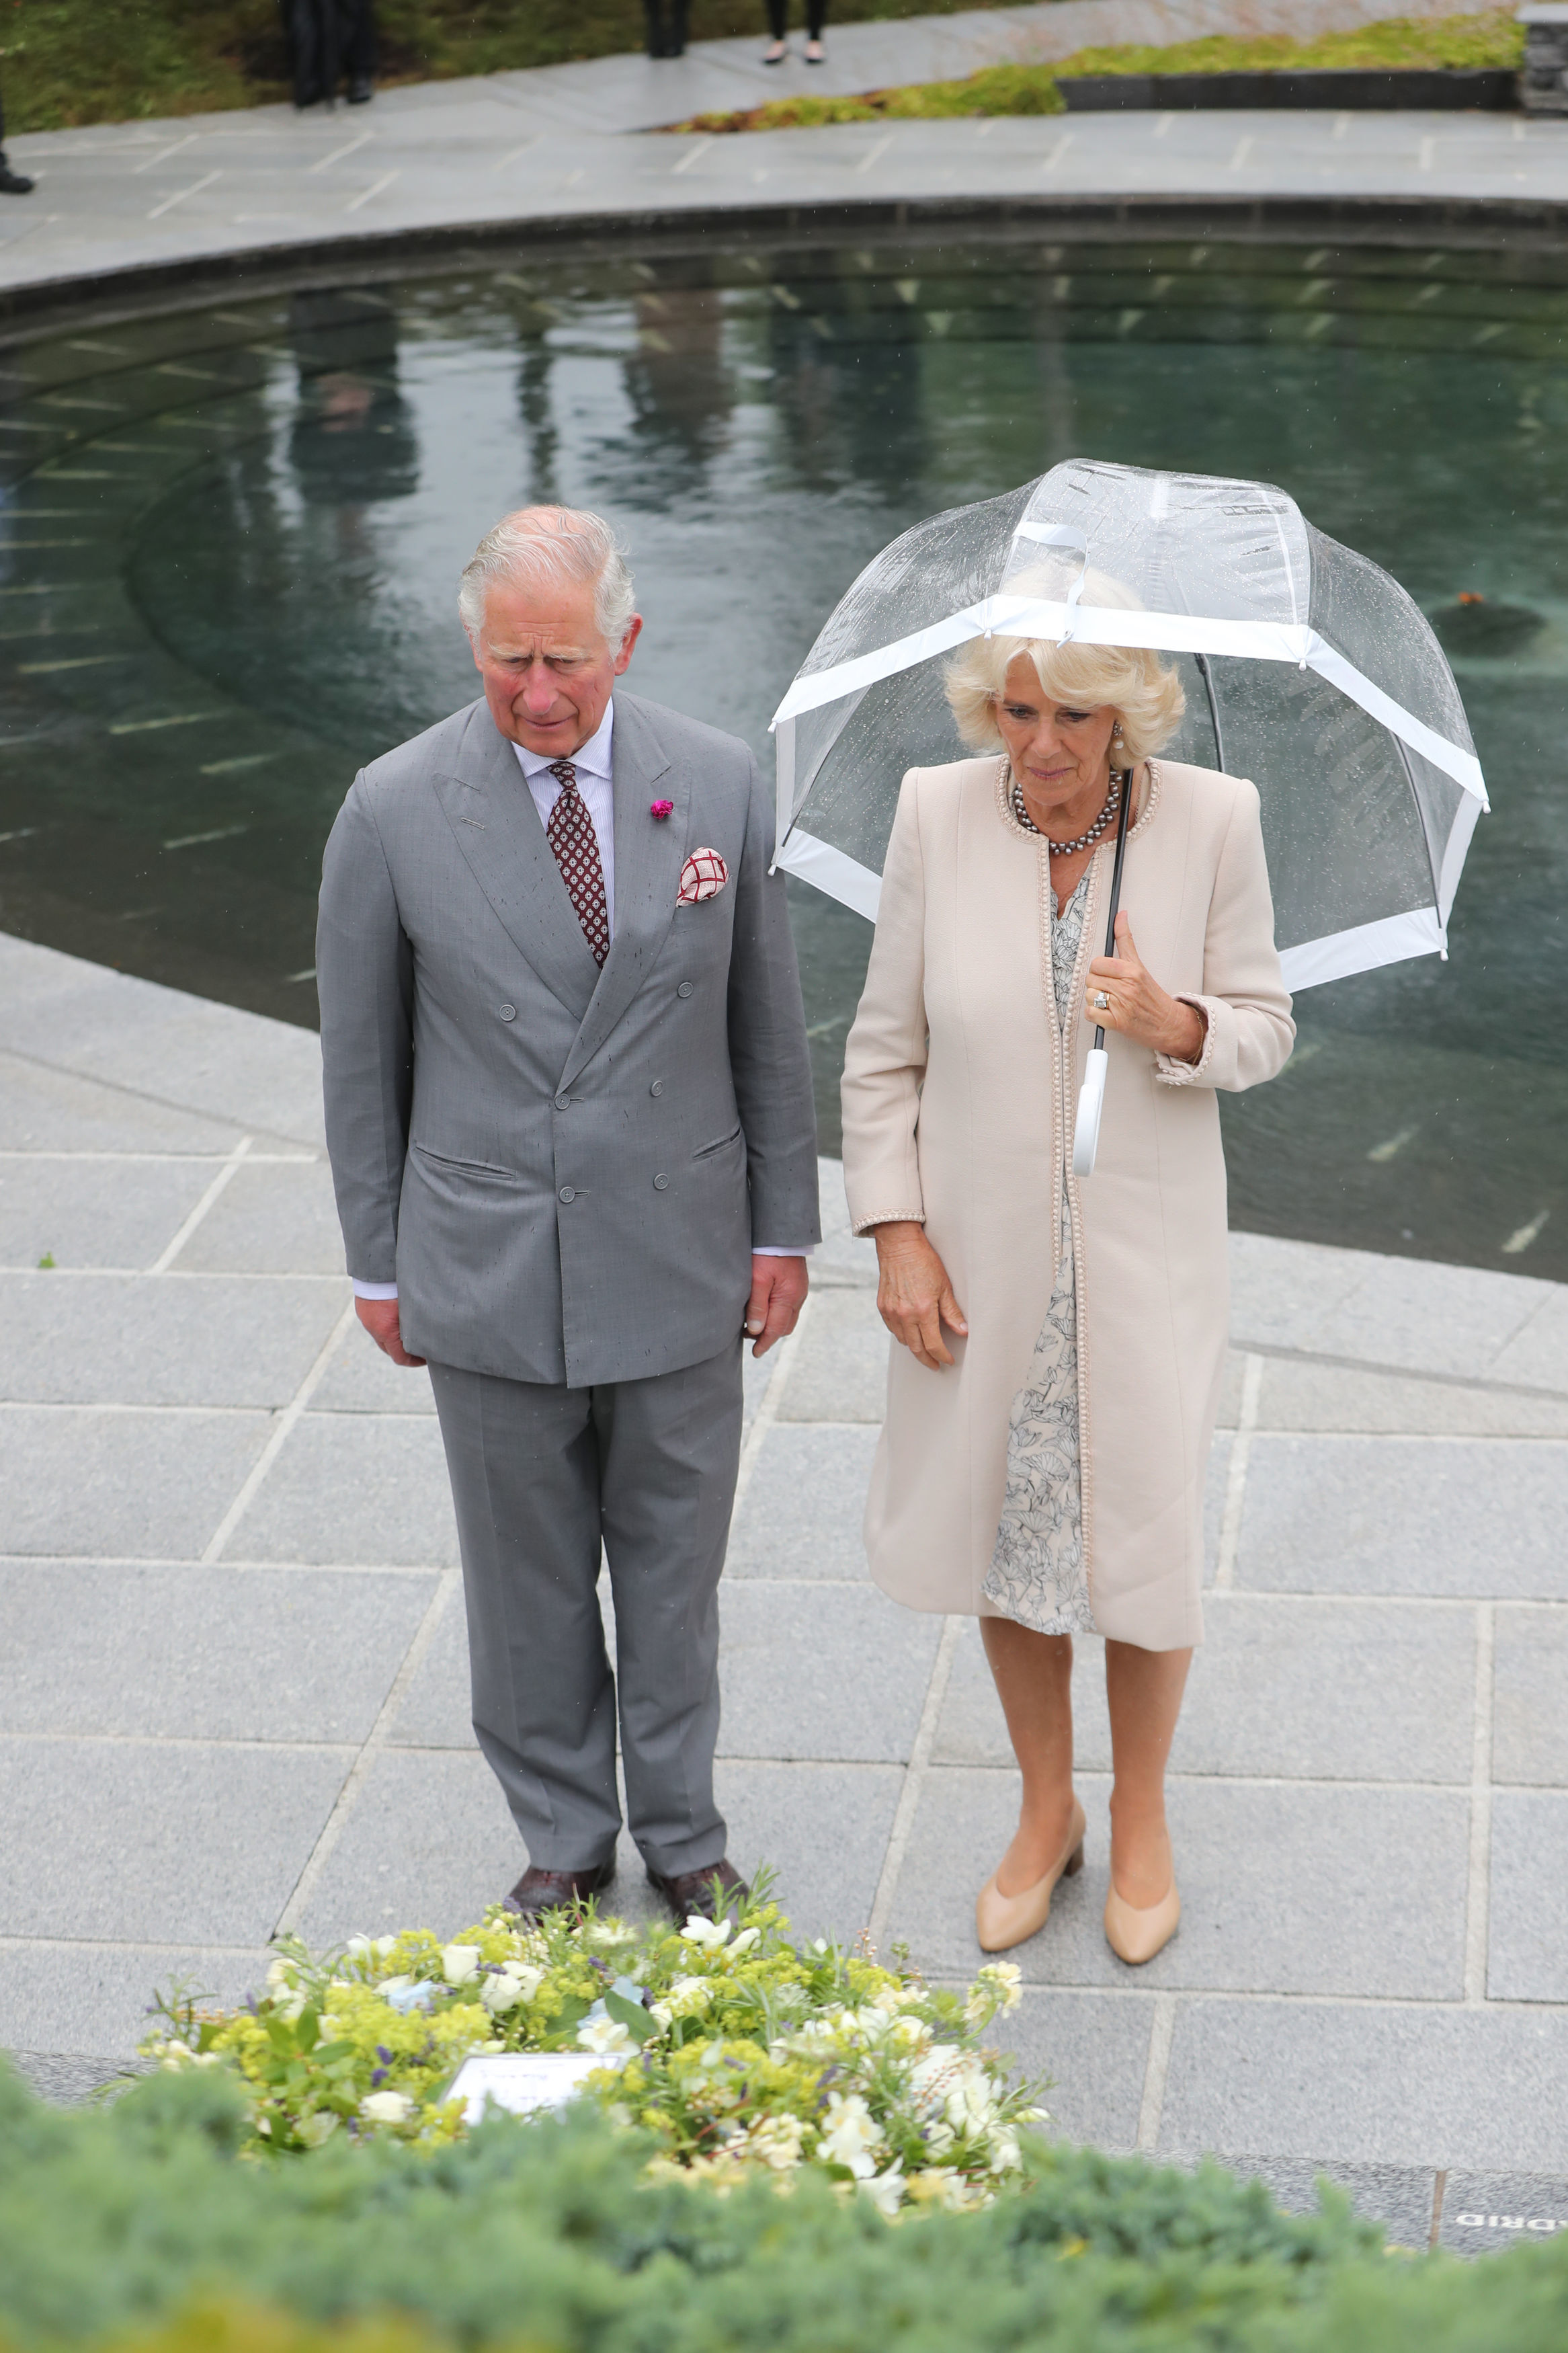 Prince Charles, Prince of Wales and Camilla, Duchess of Cornwall lay a wreath during a visit to the Omagh Bomb memorial on June 13, 2018 in Omagh, Northern Ireland. The Prince of Wales and Duchess of Cornwall are paying a four day visit to Northern Ireland and the Republic of Ireland.